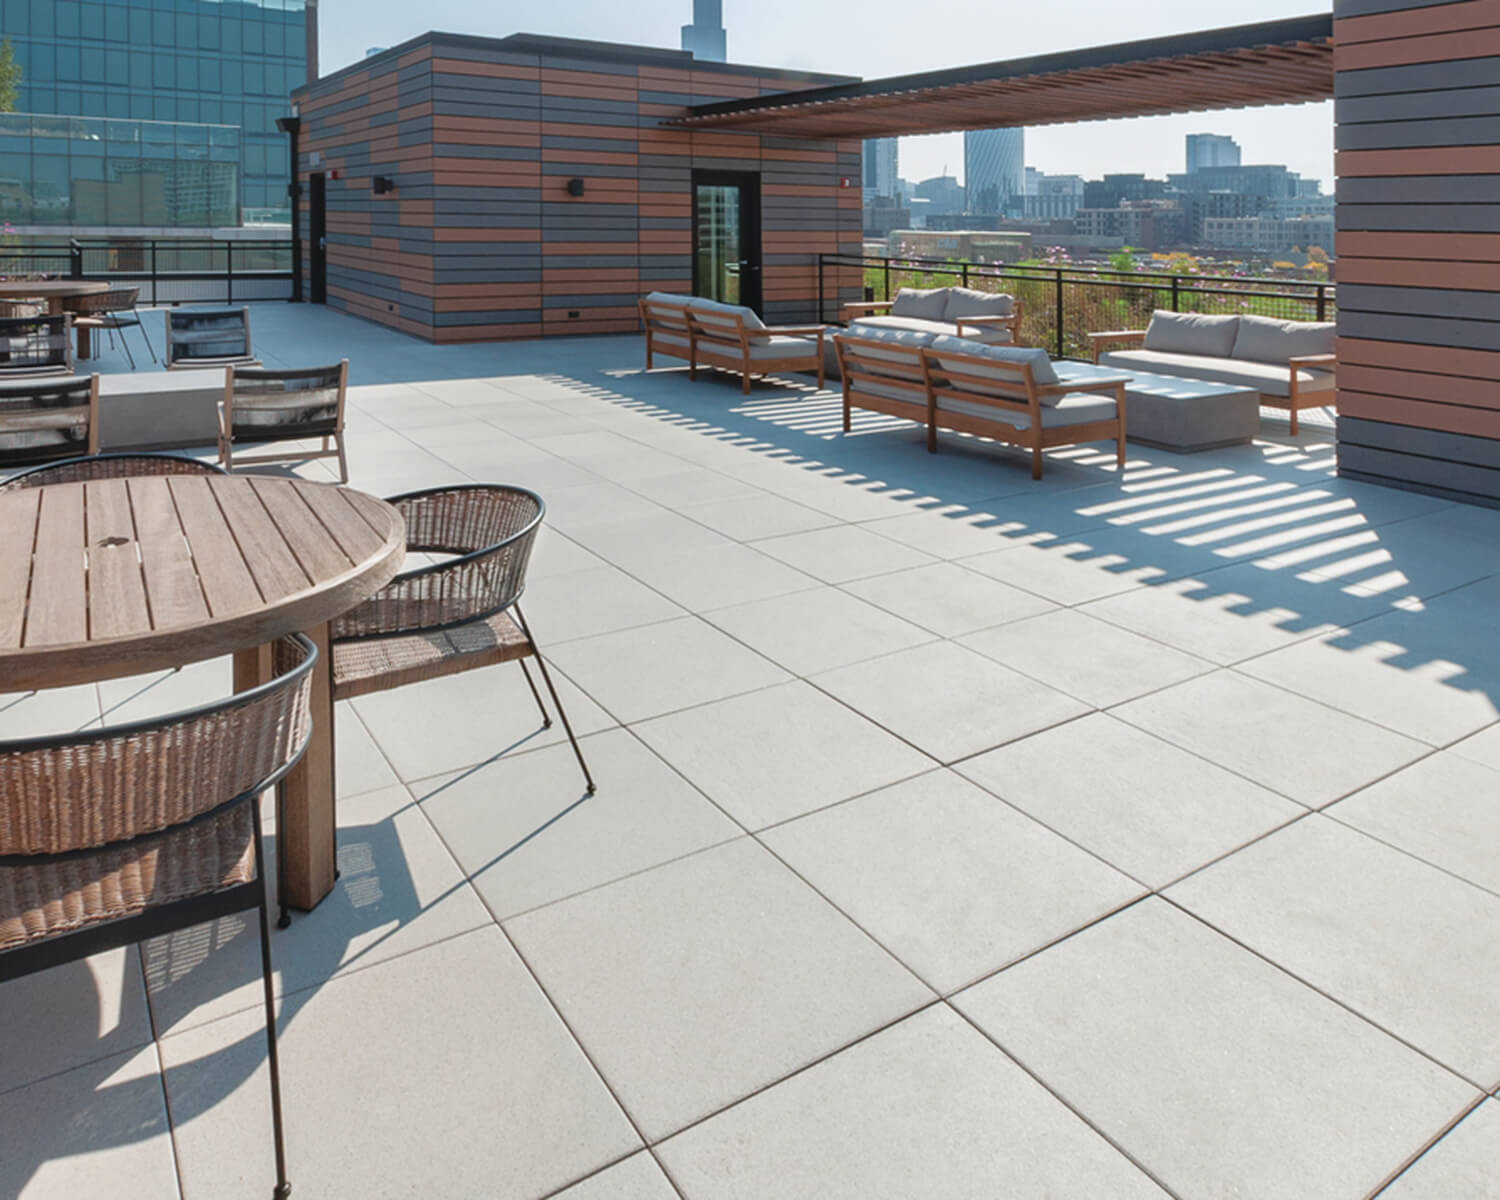 Unilock slabs on a rooftop deck with lounge and dining seating